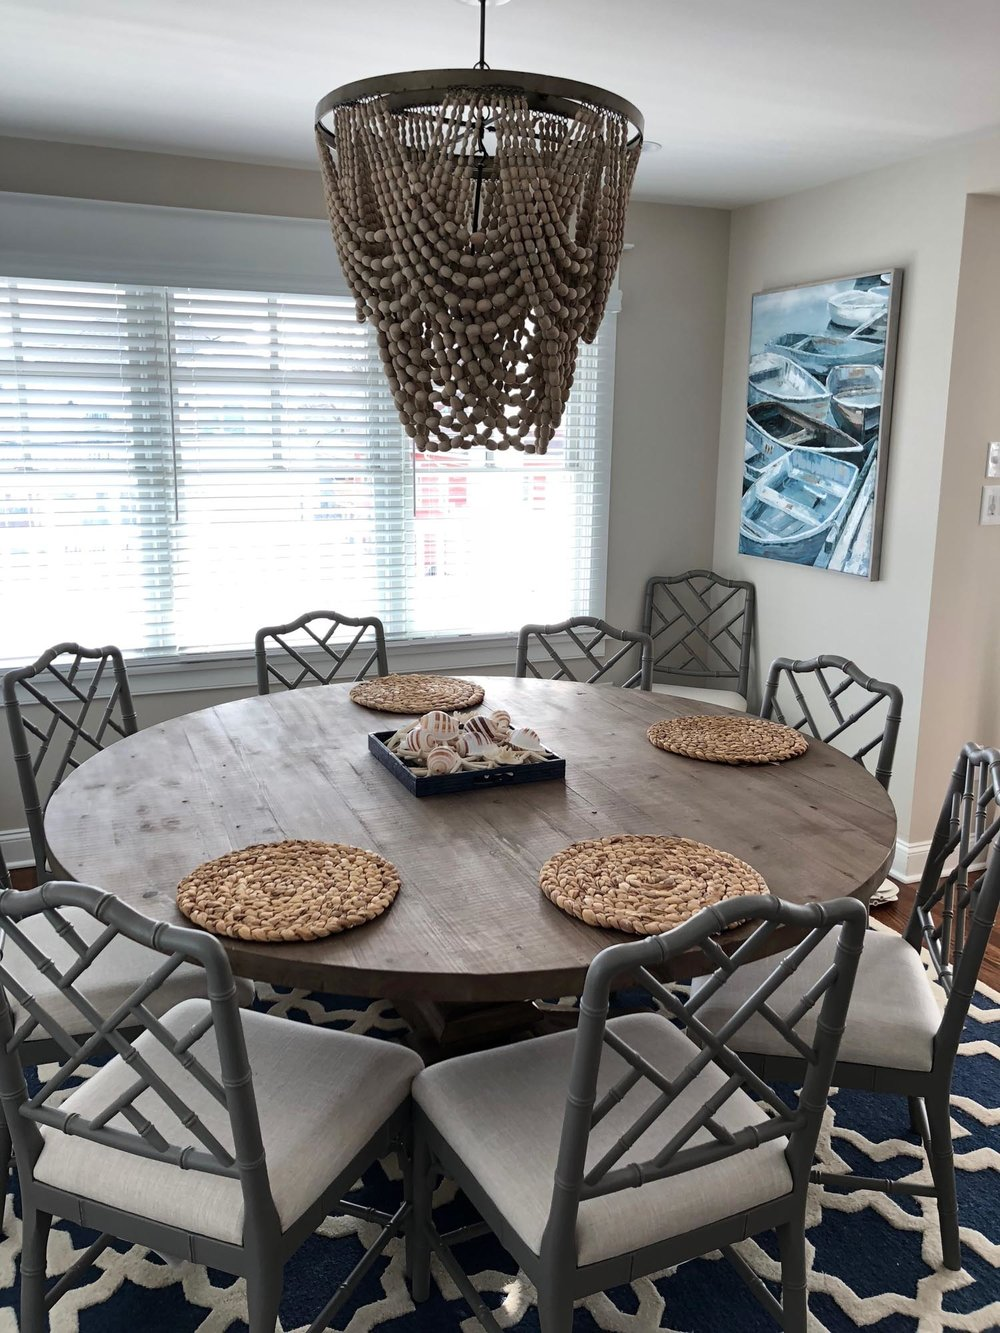 Breakfast nook with wooden round table and chairs